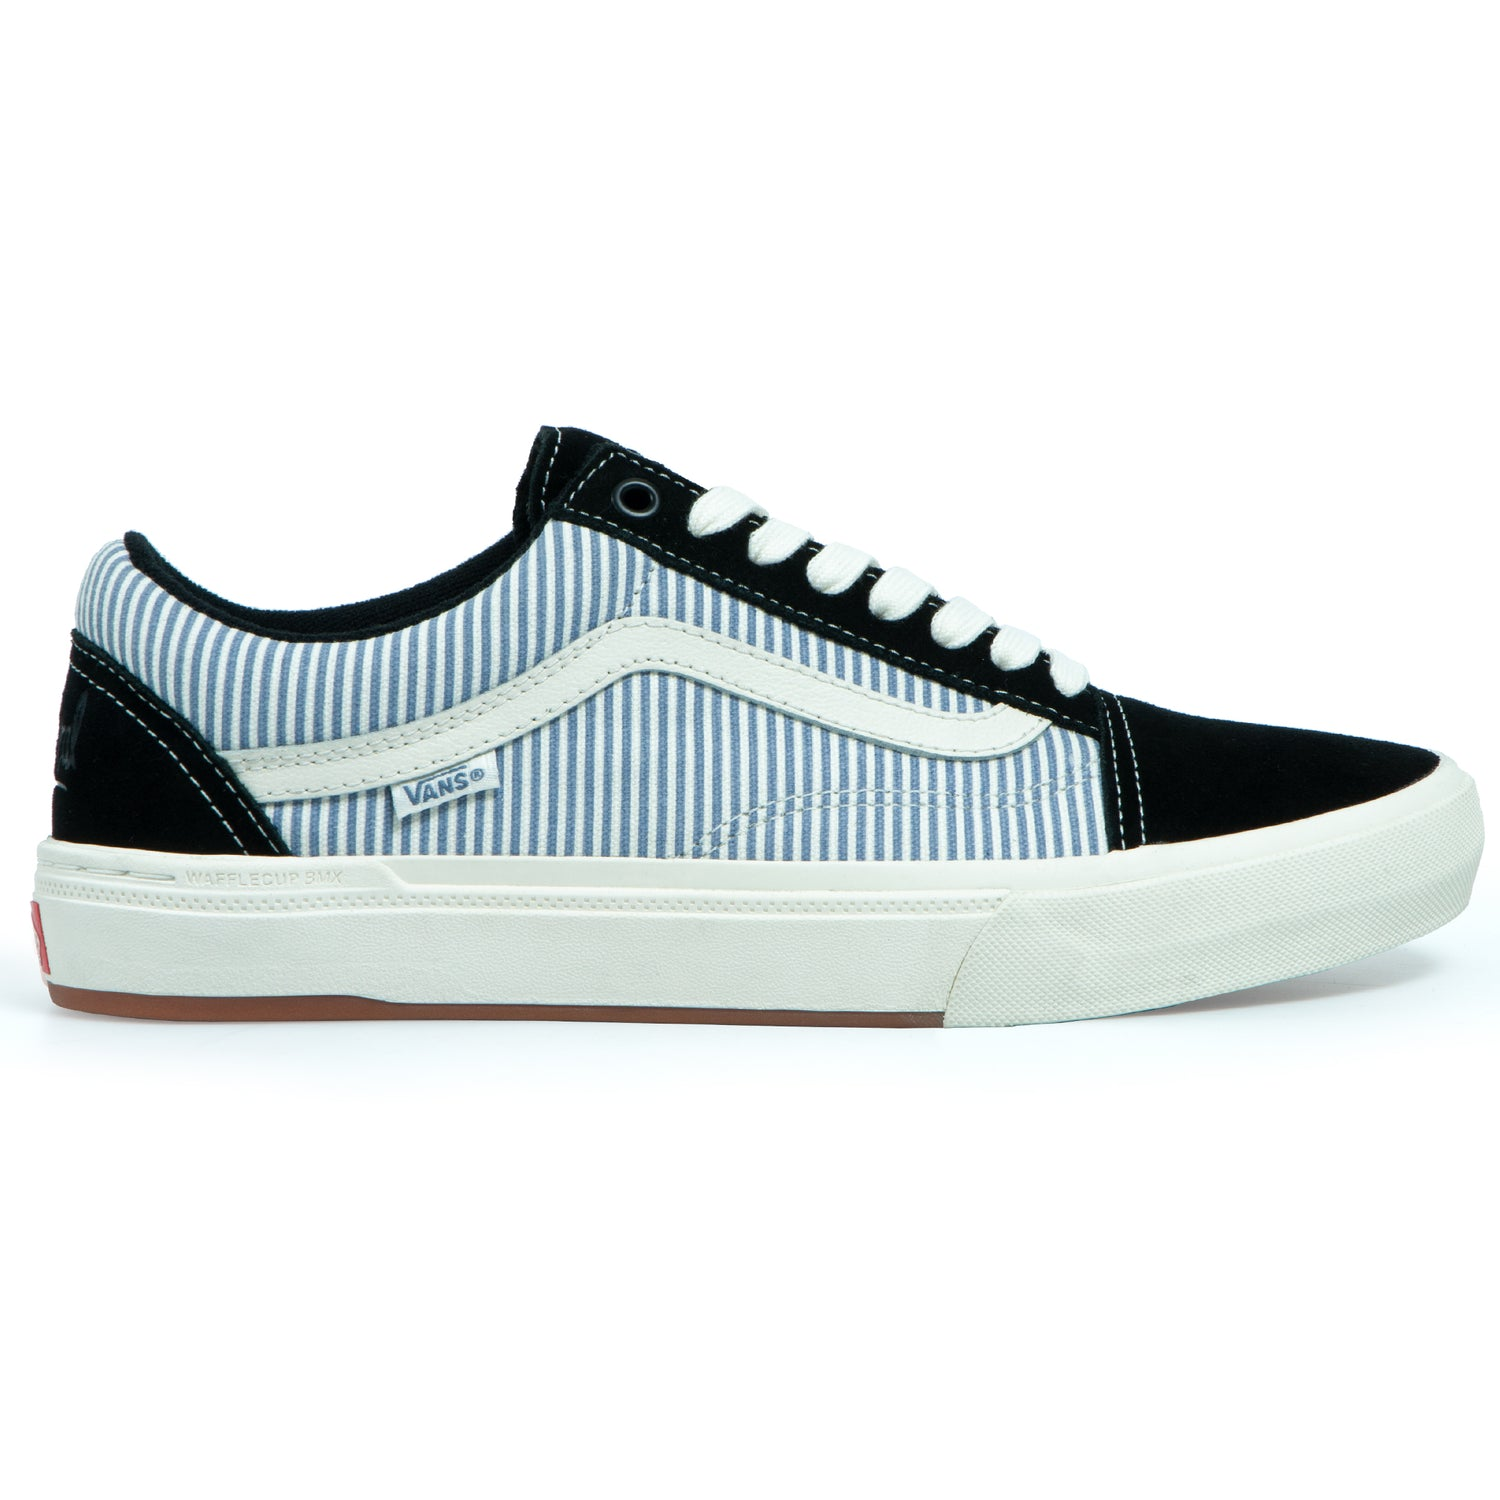 Vans X Federal Old Skool Pro - Black / Pinstripe